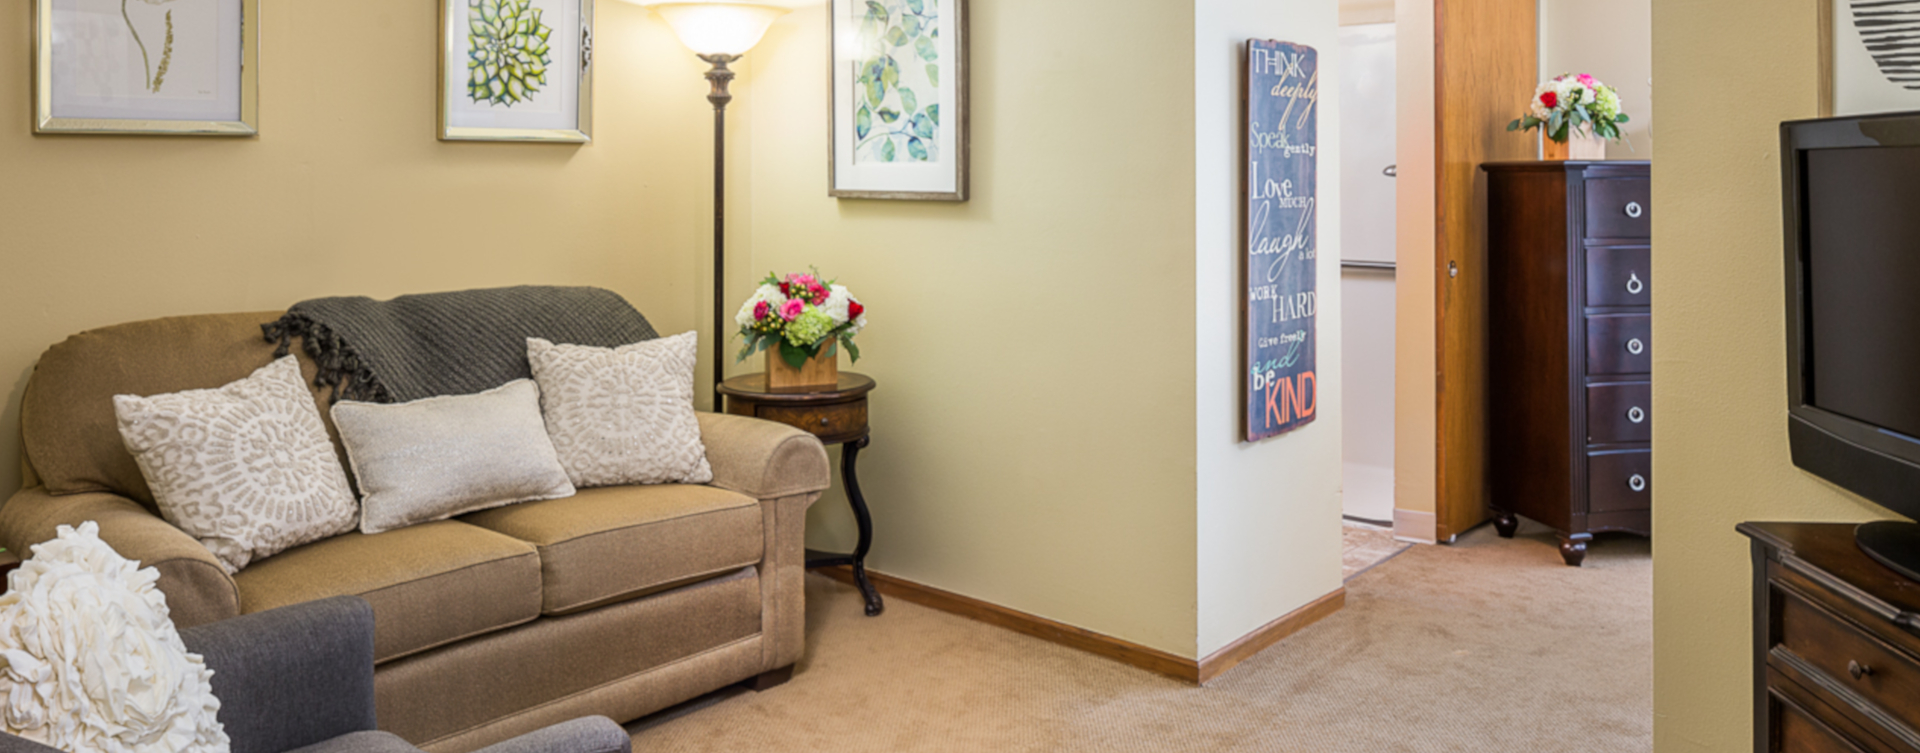 Enjoy senior friendly amenities, personal climate control and security in an apartment at Bickford of Omaha - Hickory